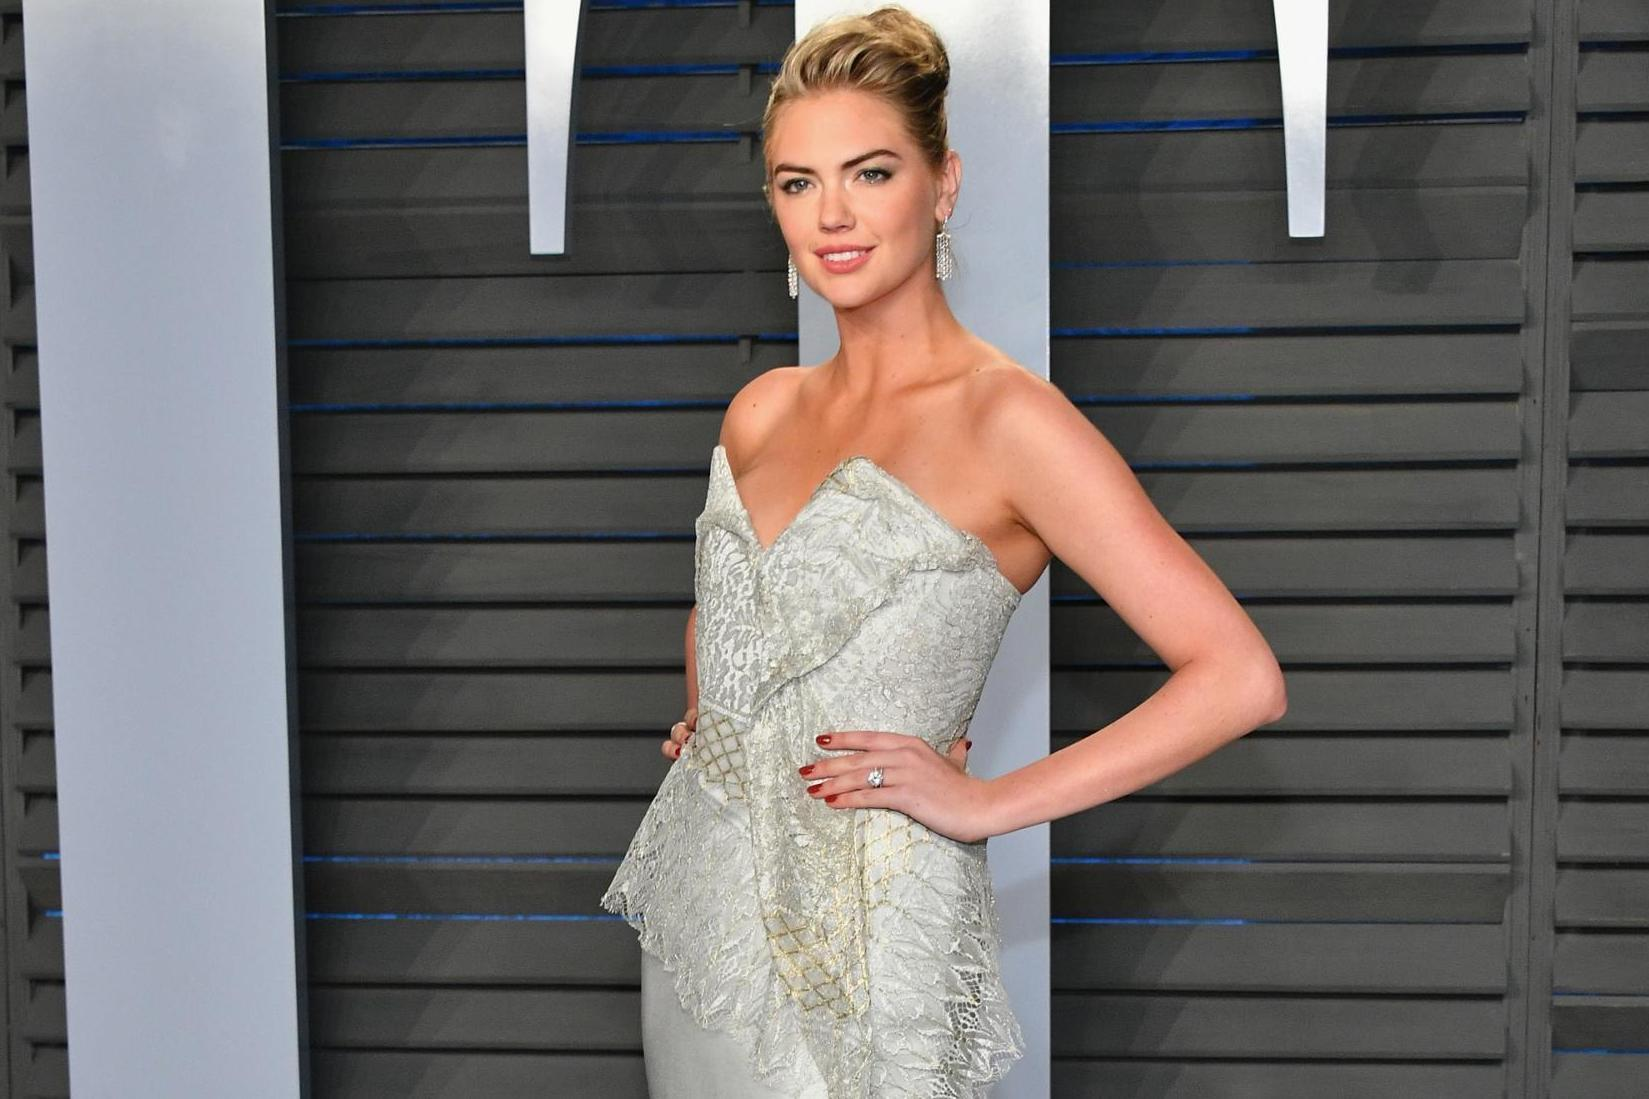 Kate Upton faces backlash for partnership with Canada Goose: 'How can you be so blind?' - The Independent